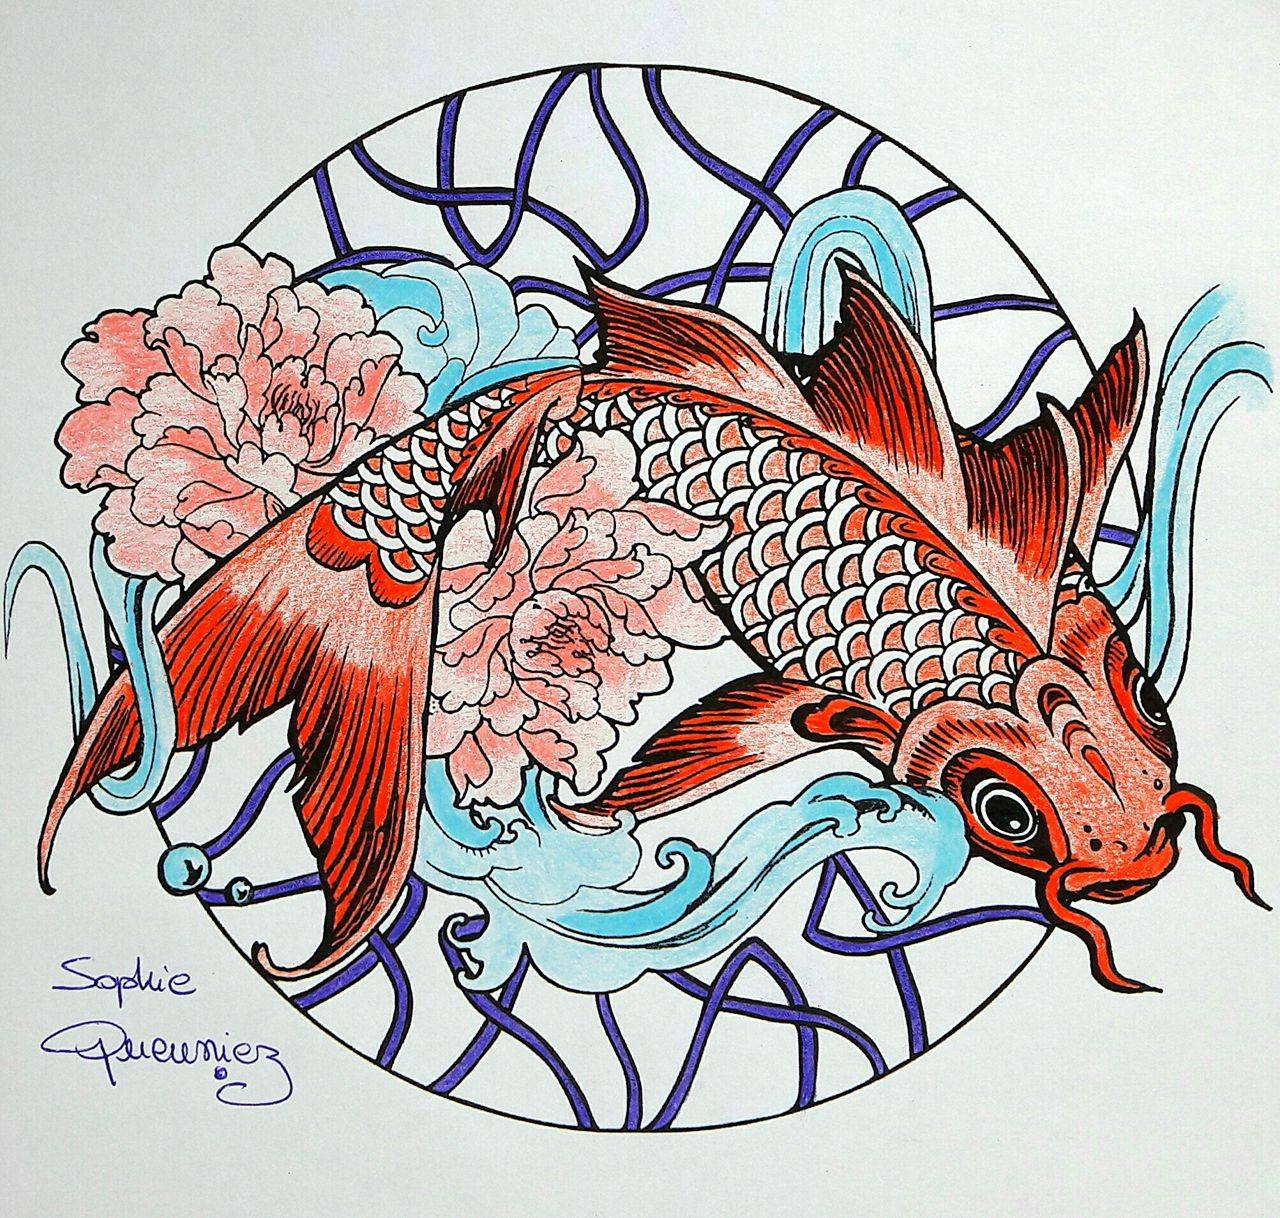 Coloring Pages For Adults Tutorial : Coloring tutorial carp mandala with colouring pencils by